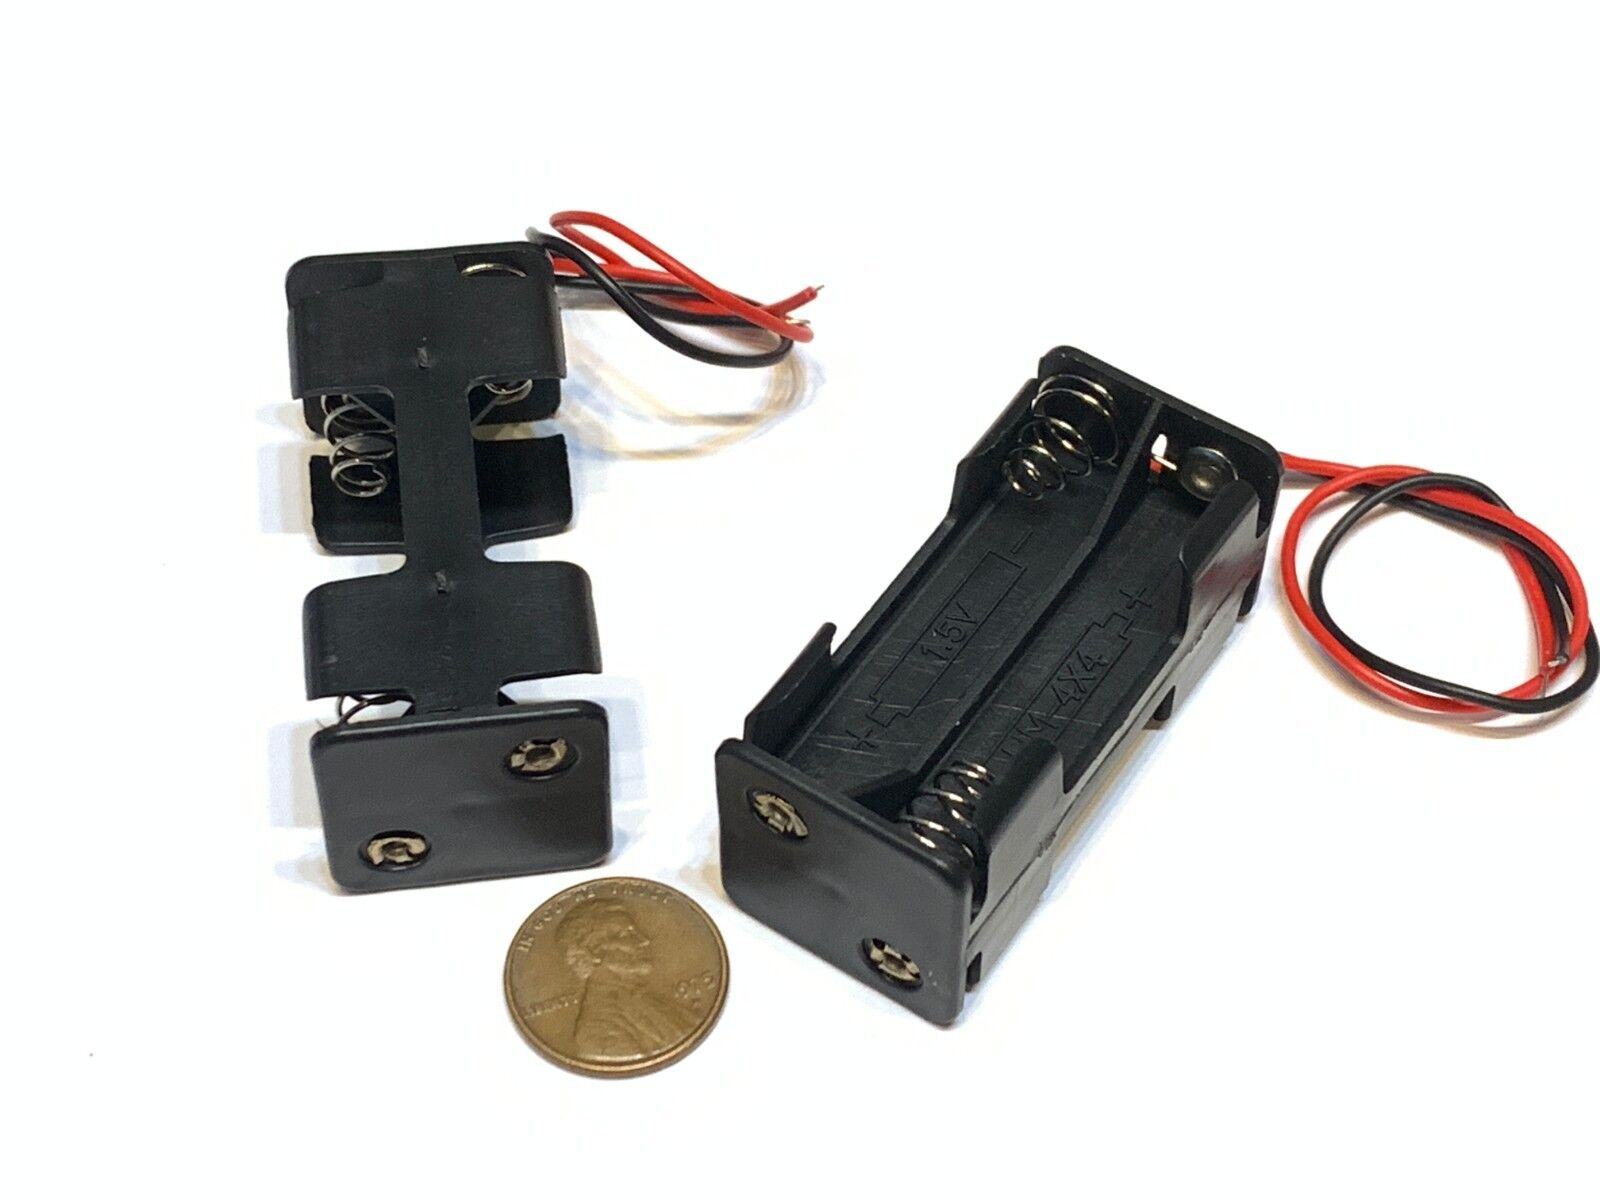 2 Pieces aaa battery holder Double Layers Back to back 4 four wire leads 6v C16